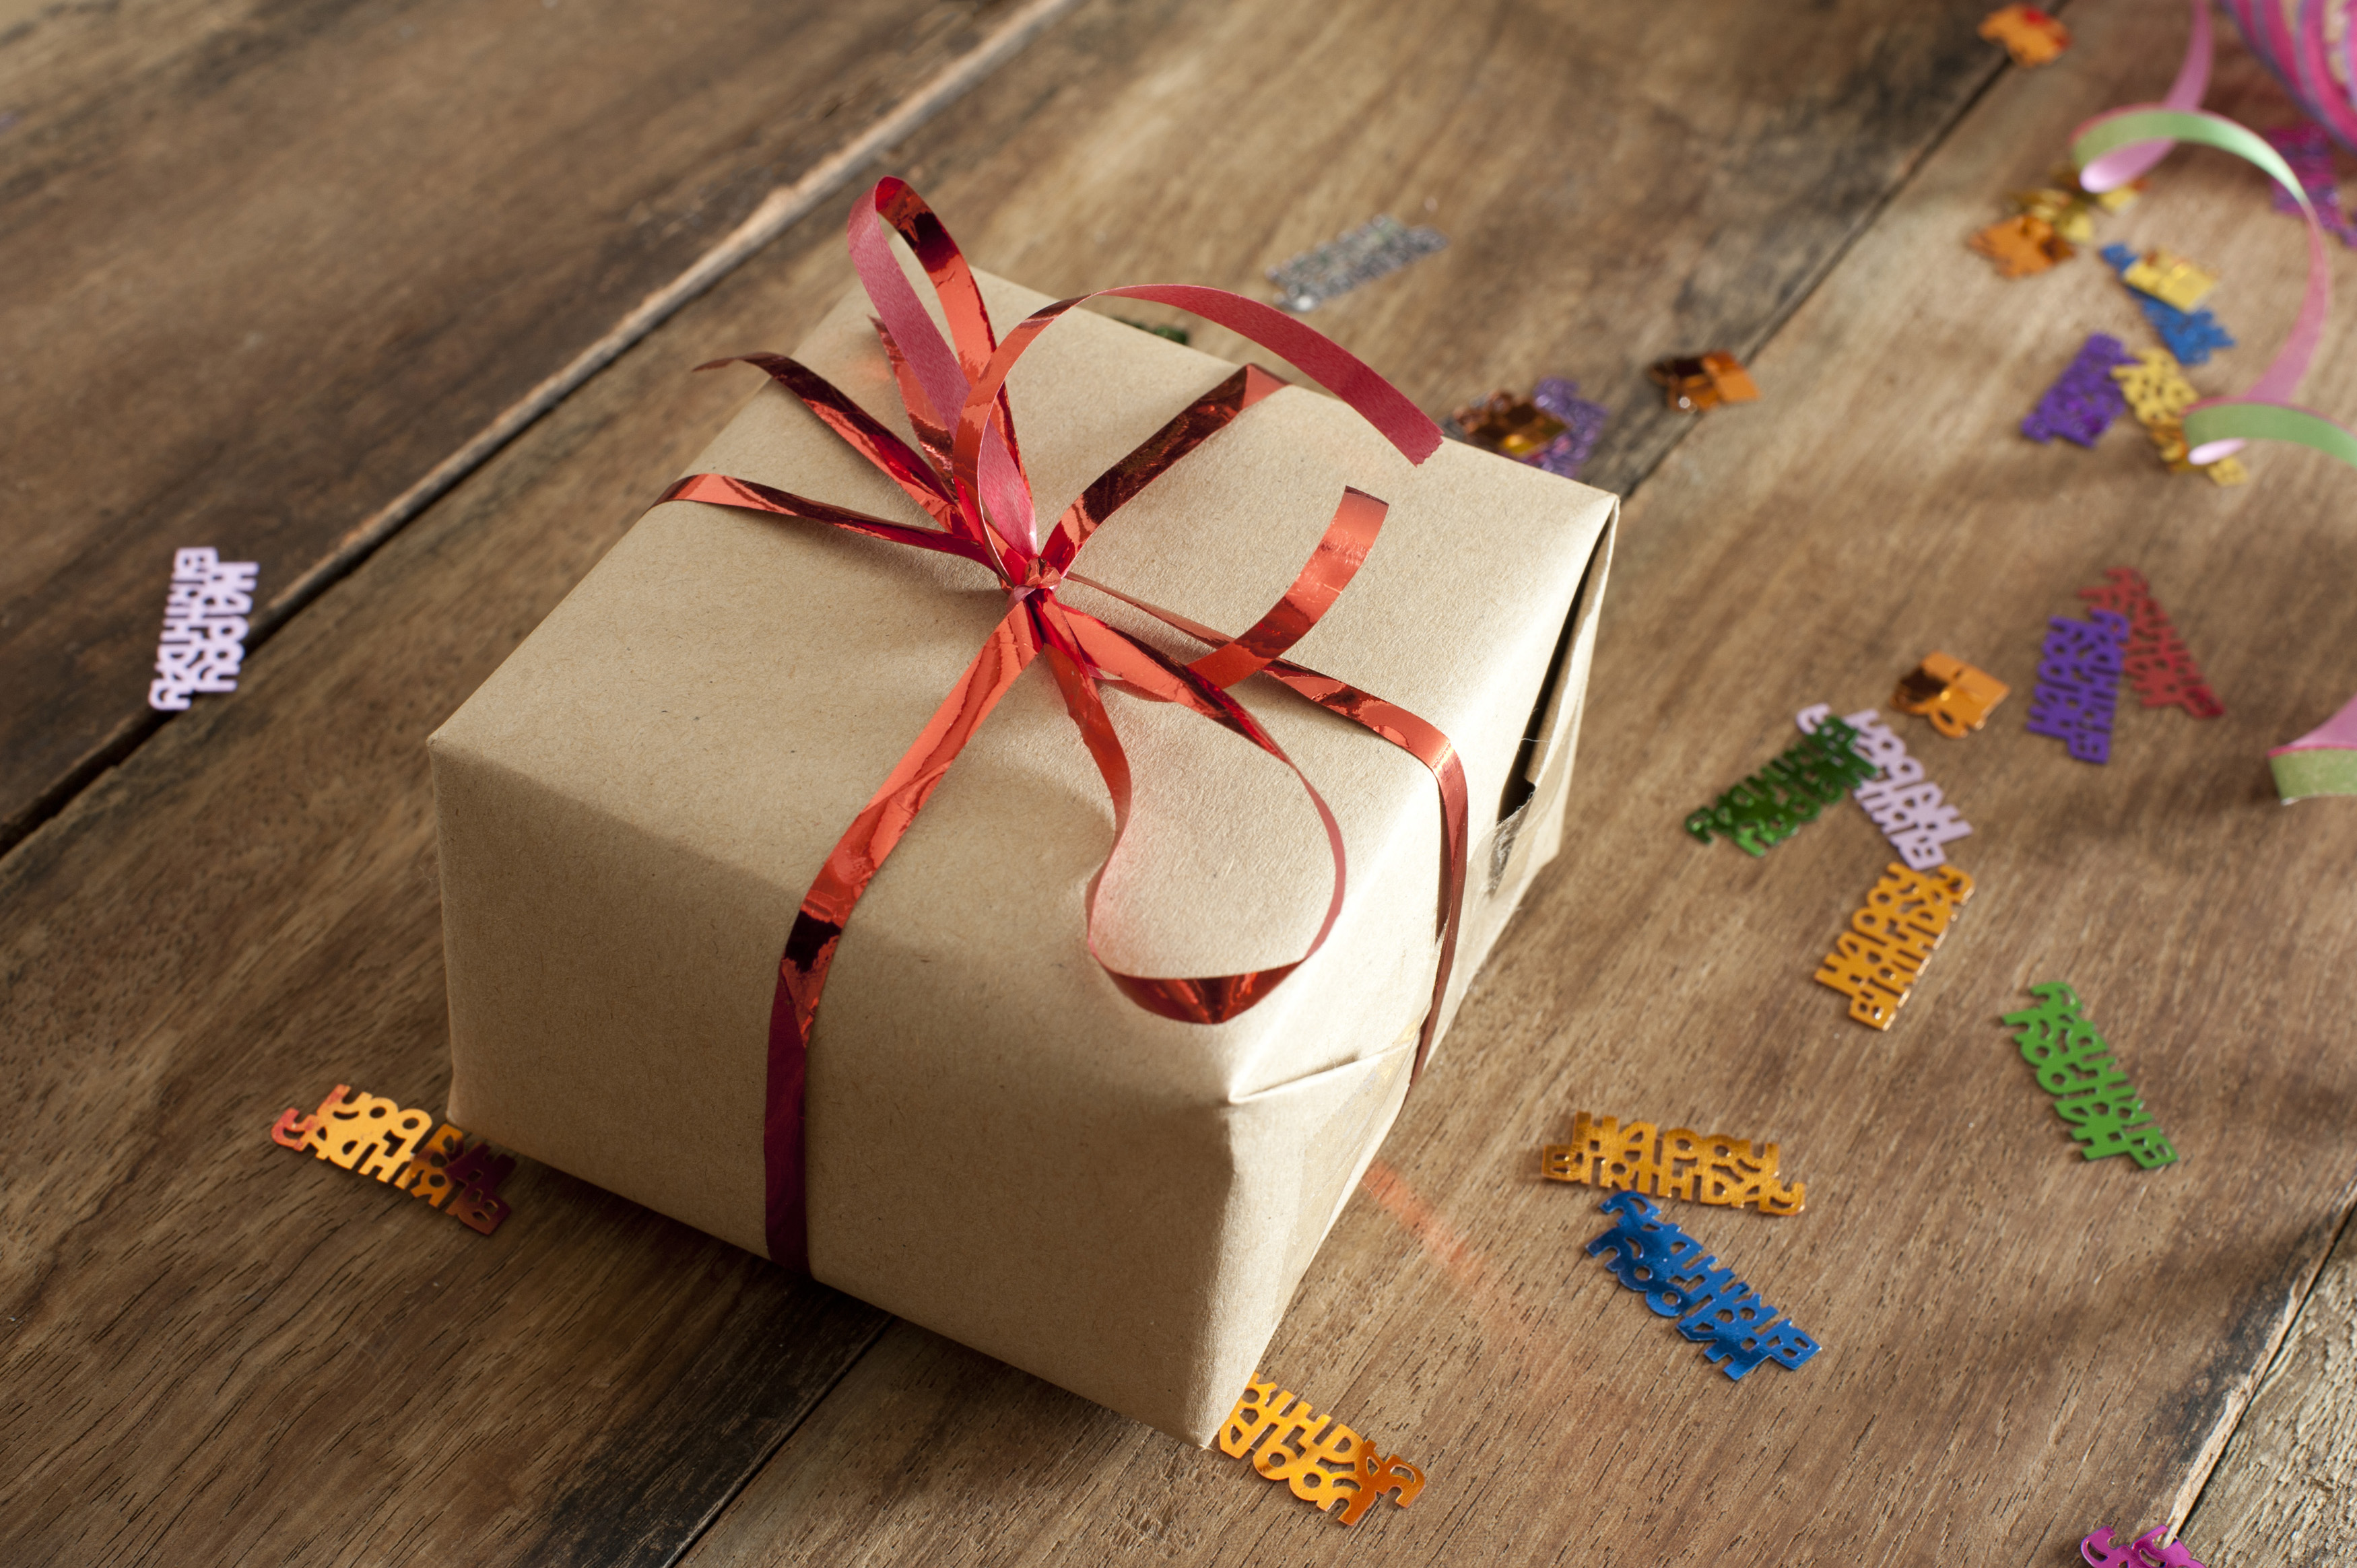 Free stock photo 11433 birthday gift box on the table with confetti brown birthday gift box with red ribbon placed on a wooden table with confetti negle Image collections